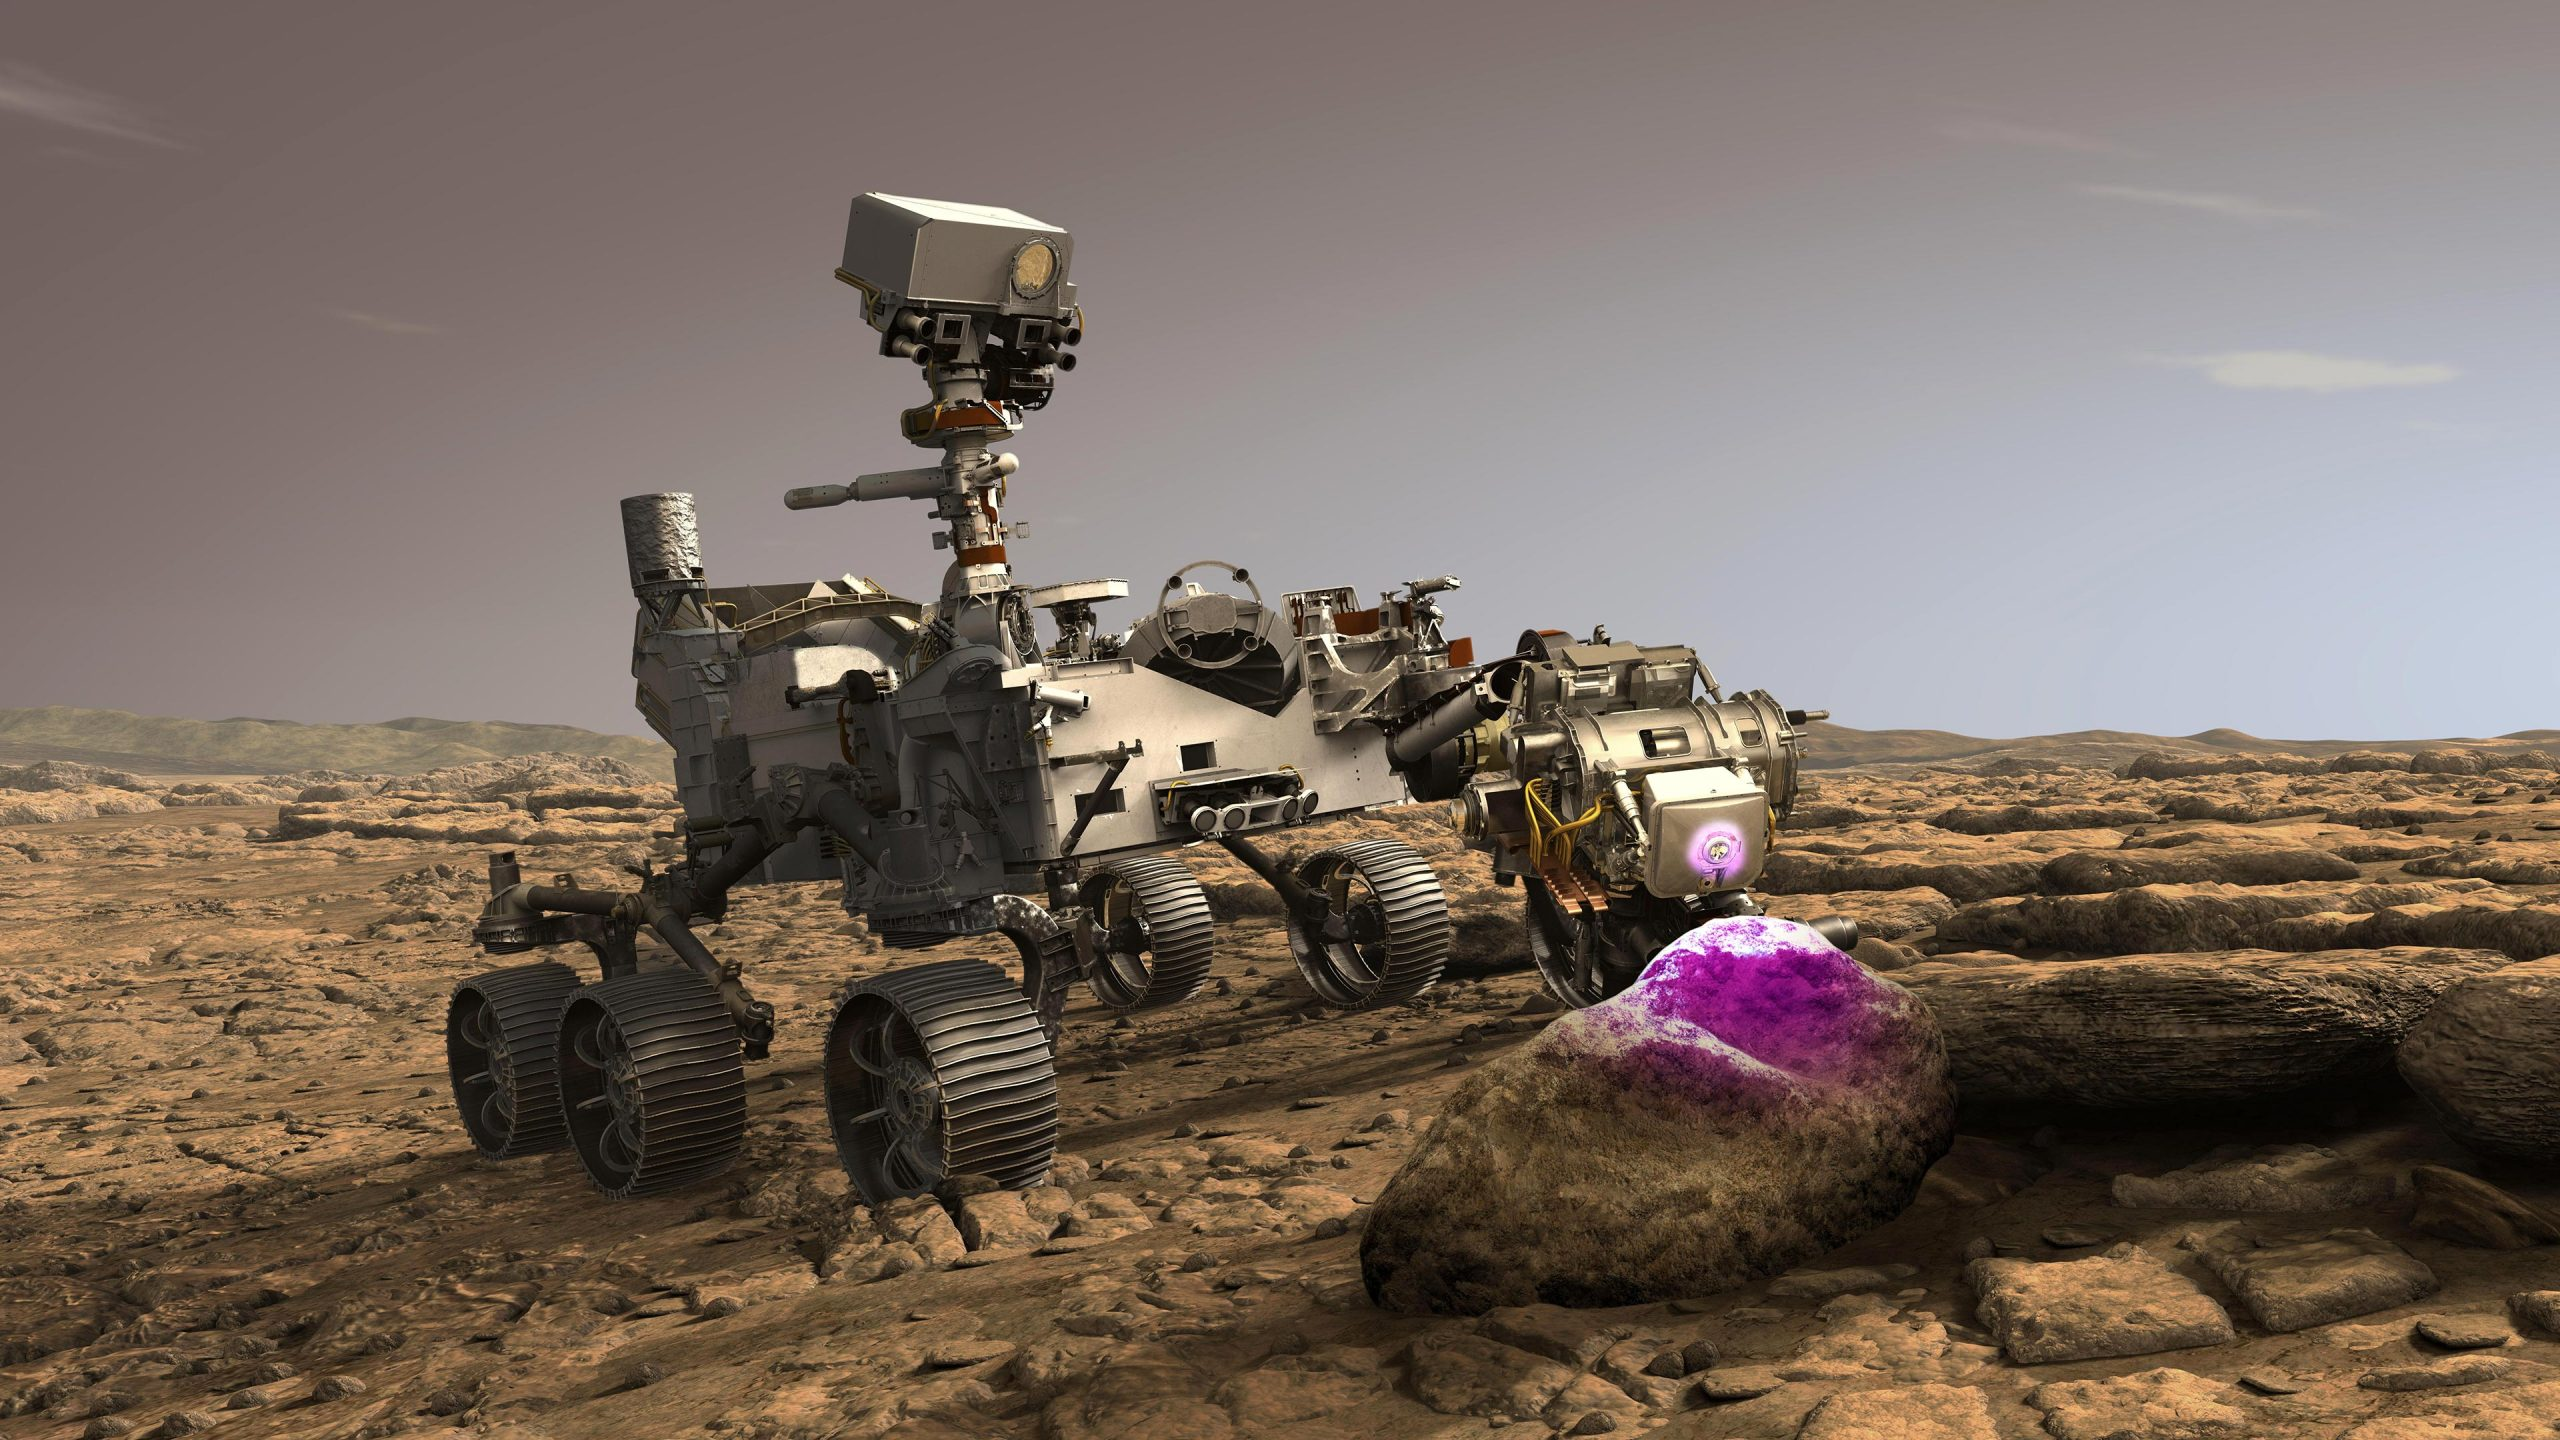 NASA's New Mars Rover Will Use X-Rays to Hunt for Chemical Fingerprints Left by Ancient Microbes - SciTechDaily